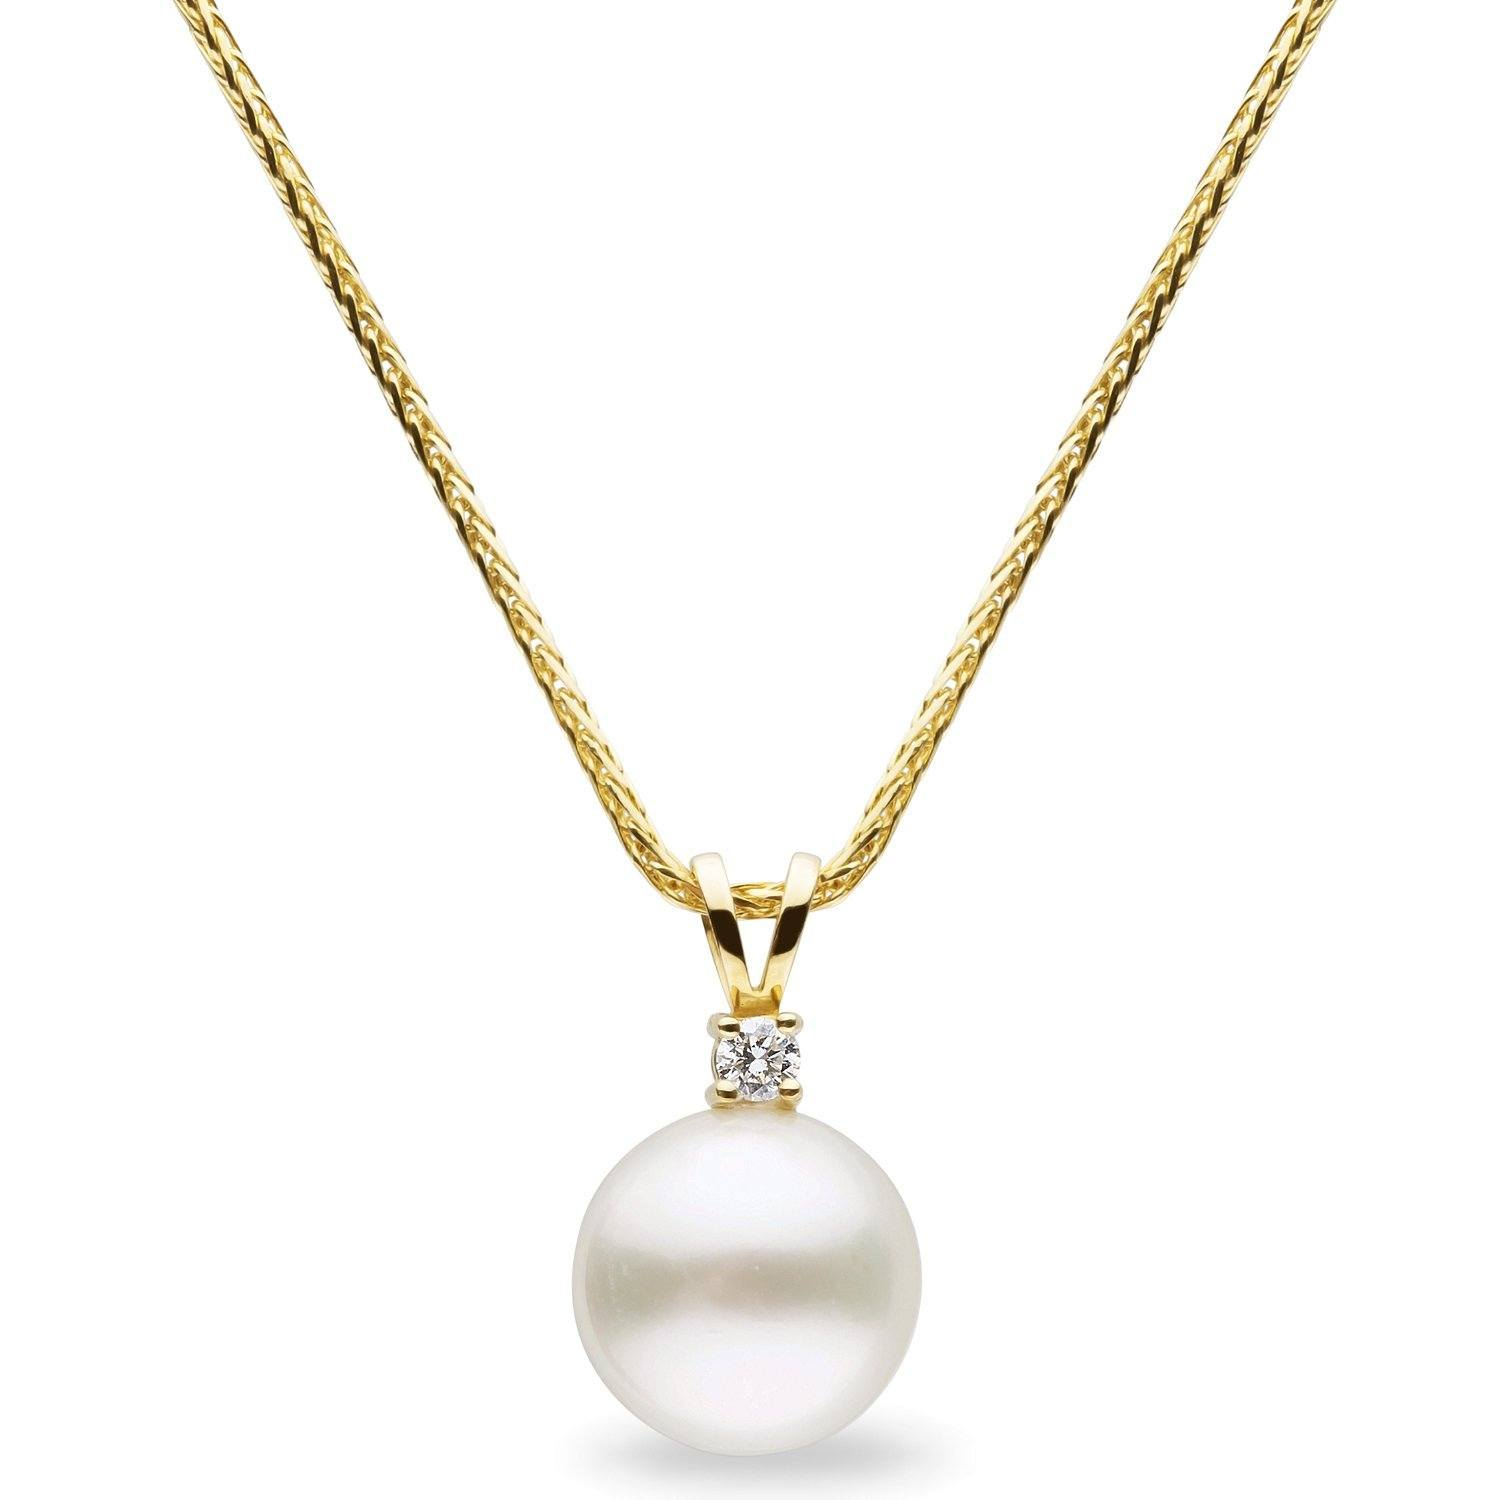 12.0-13.0 mm White South Sea Pearl Pendant with Diamond in Yellow Gold